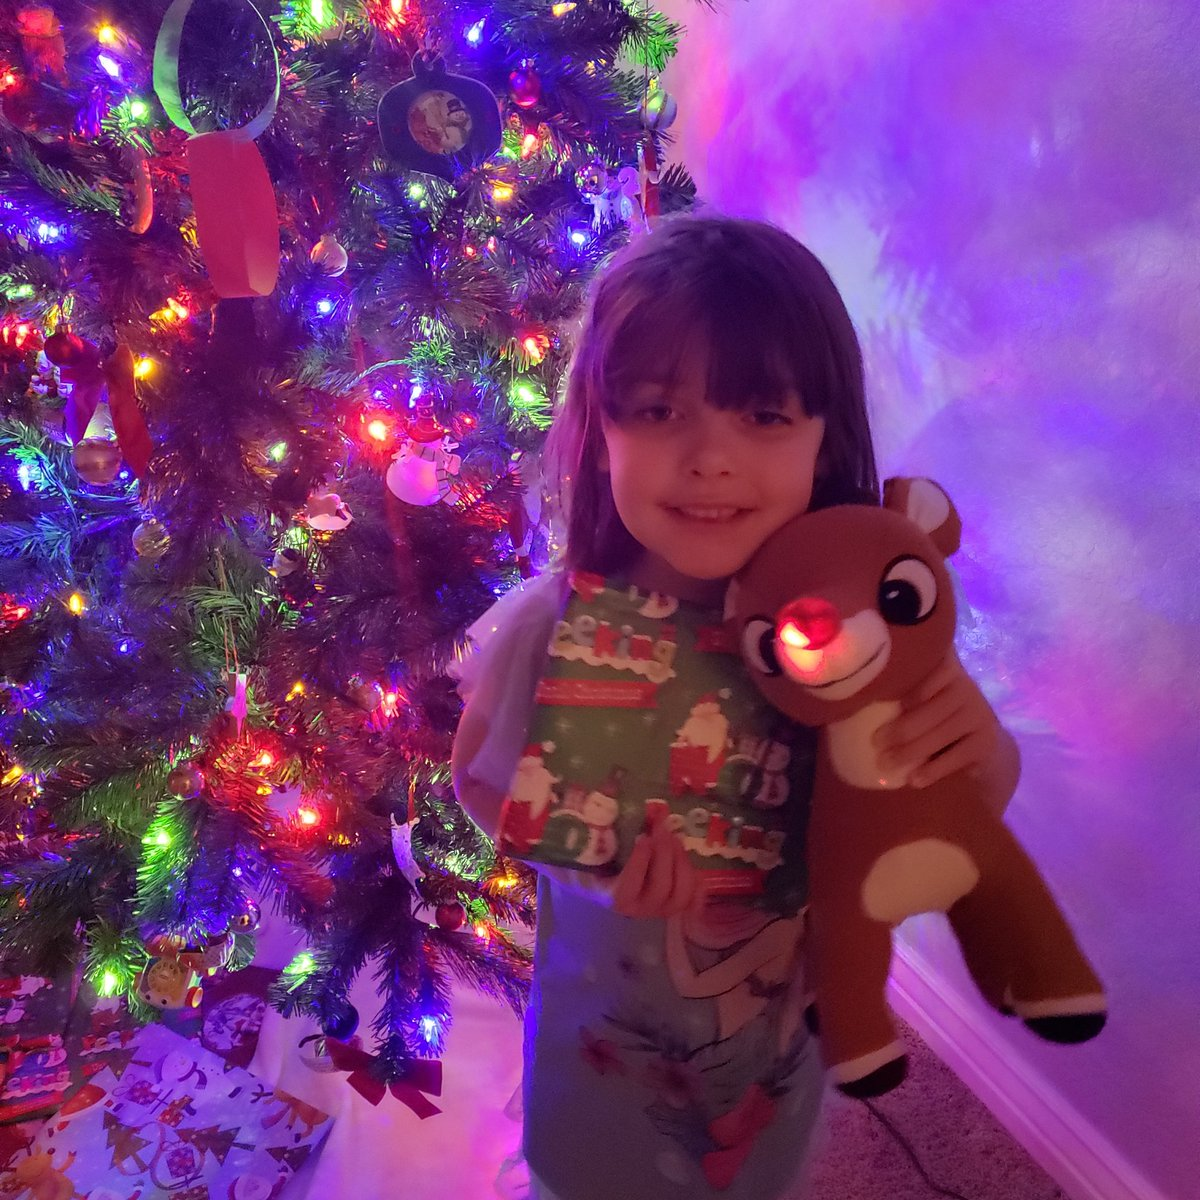 A few hours late due to me forgetting to post haha but 11 days til Christmas! #rudolphtherednosedreindeer #family #love #holidaycheer #firstchristmas #firstyule #newhome #adventcalendar